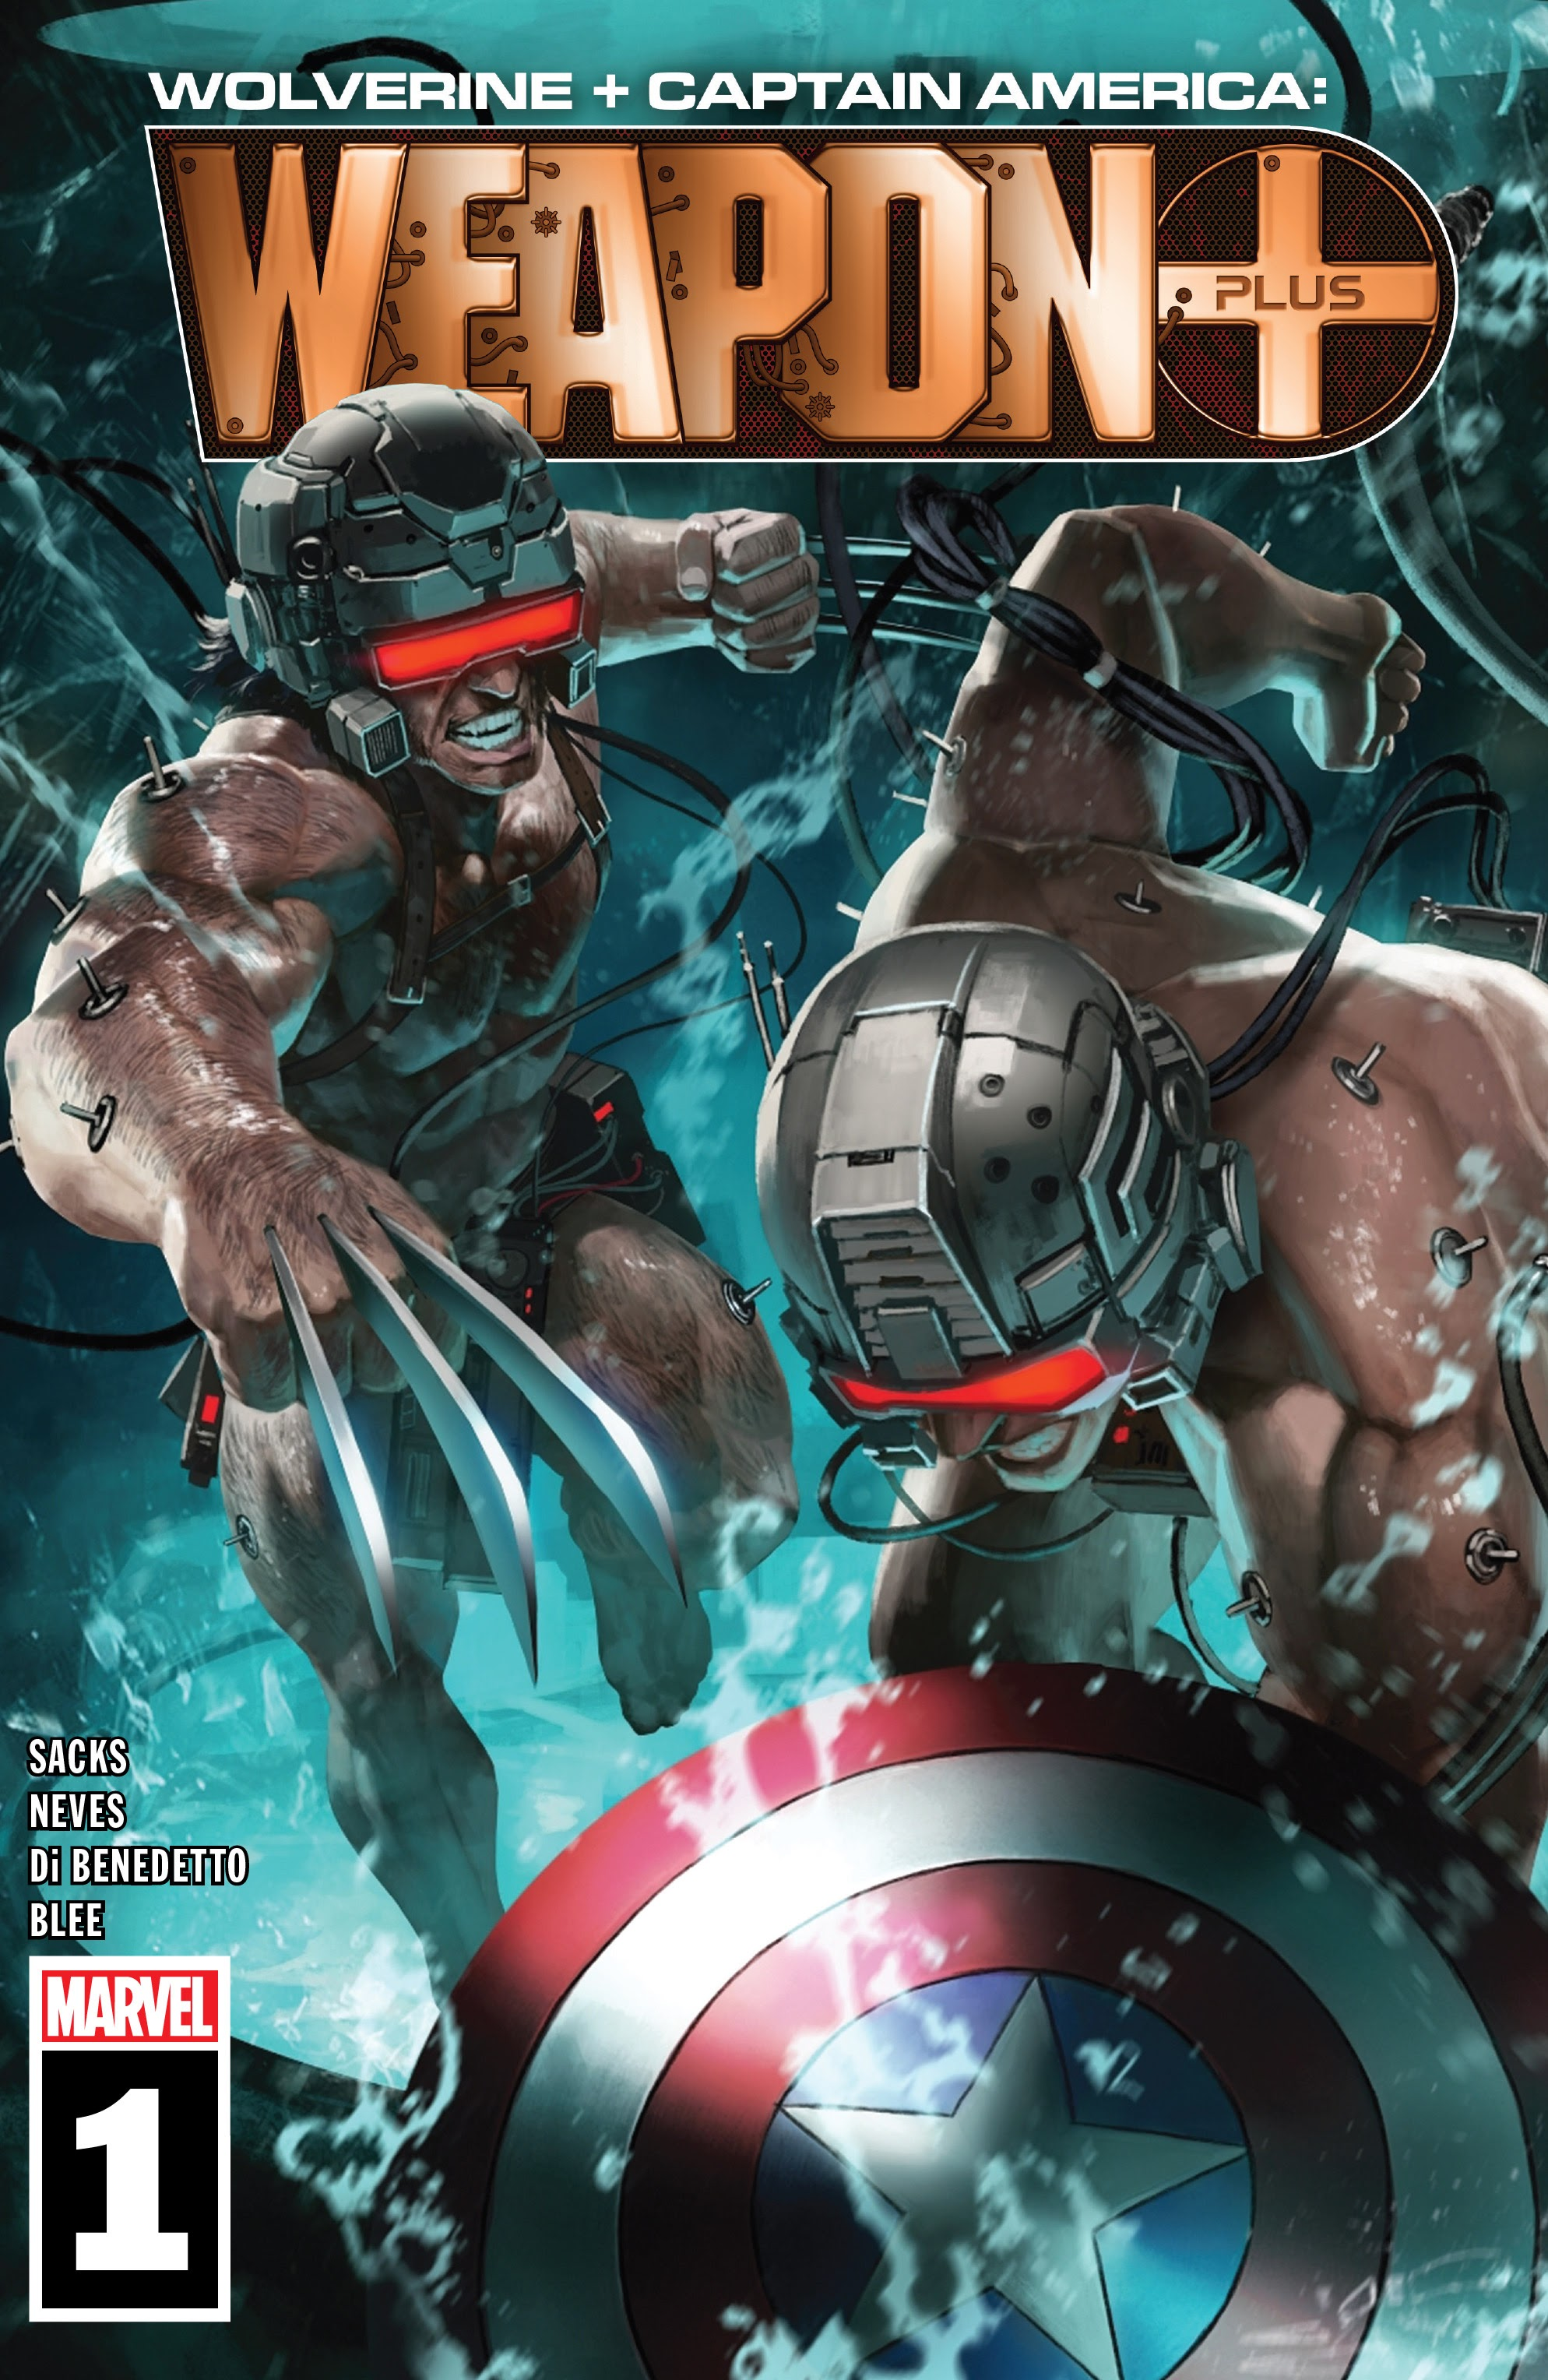 Wolverine & Captain America: Weapon Plus Full Page 1